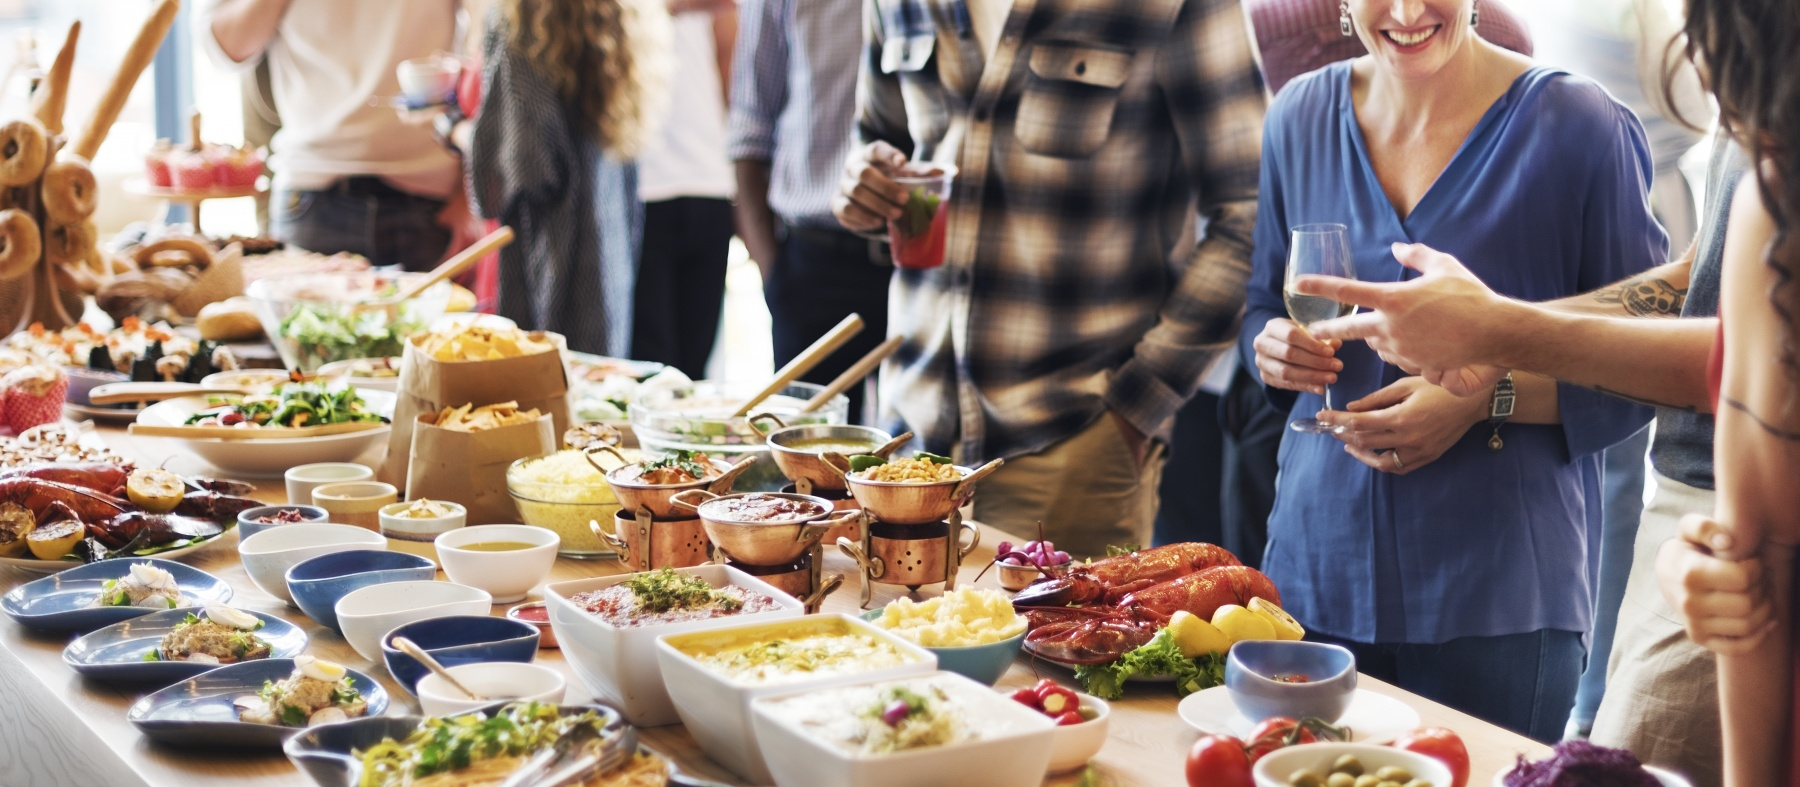 food service event catering Catering a great event relies on great food get information about menu planning, food and beverage, and appealing to your guests' taste in food.